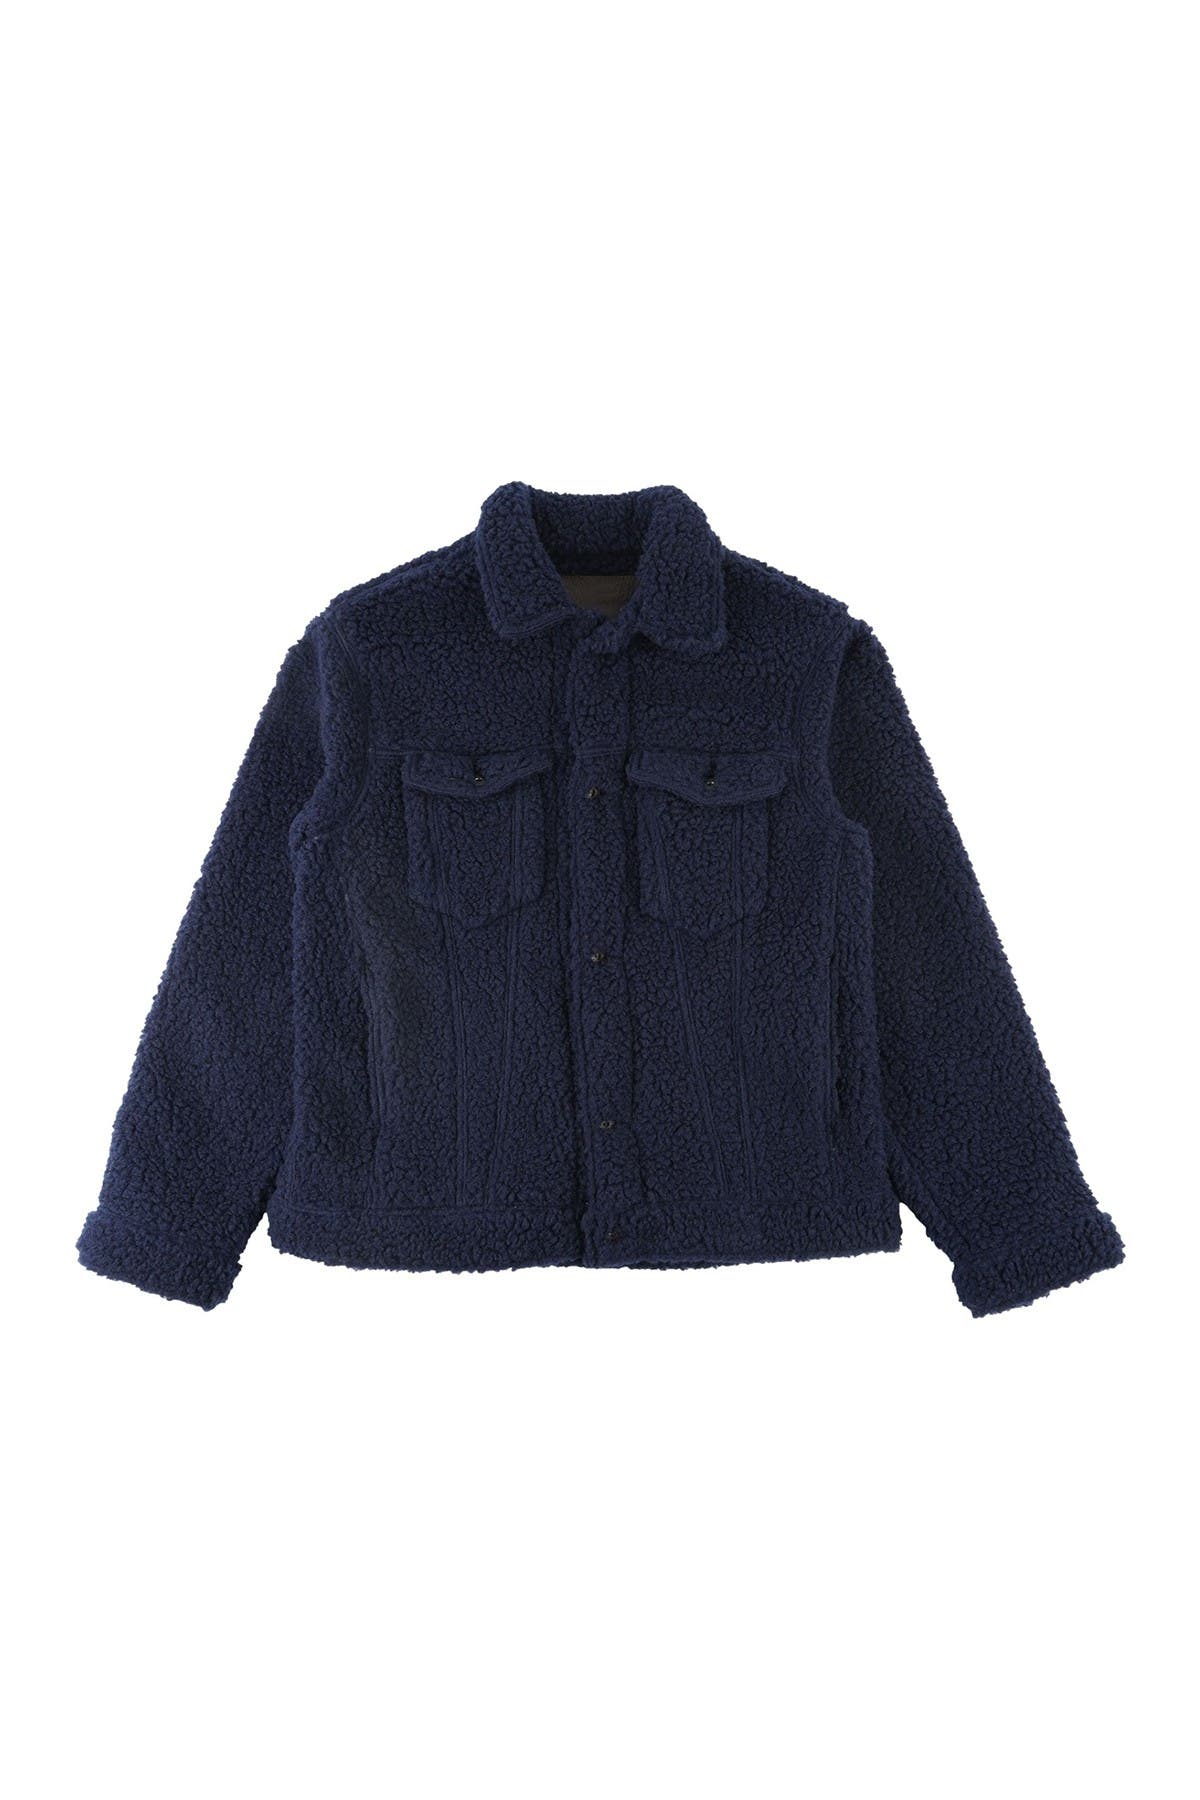 Image of Naked and Famous Navy Denim Fleece Jacket